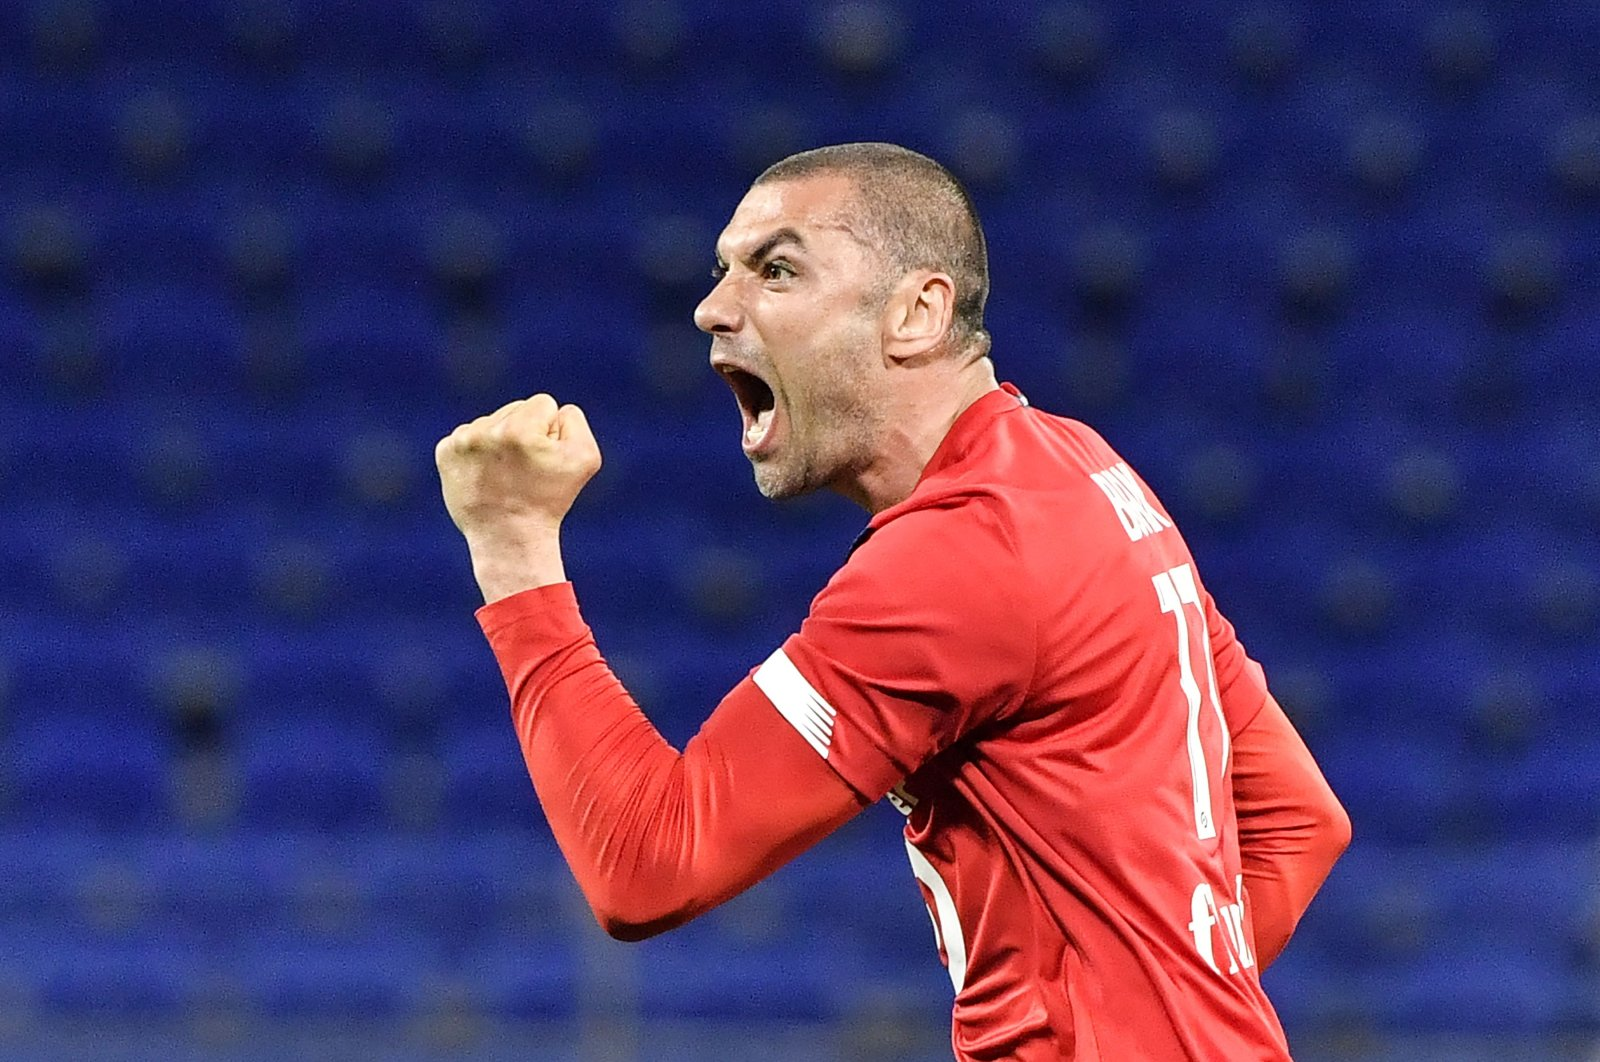 Lille's Turkish forward Burak Yilmaz reacts after scoring against Olympique Lyonnais in a French Ligue 1 match at the Groupama Stadium, in Decines-Charpieu near Lyon, south-central France, April 25, 2021. (AFP Photo)